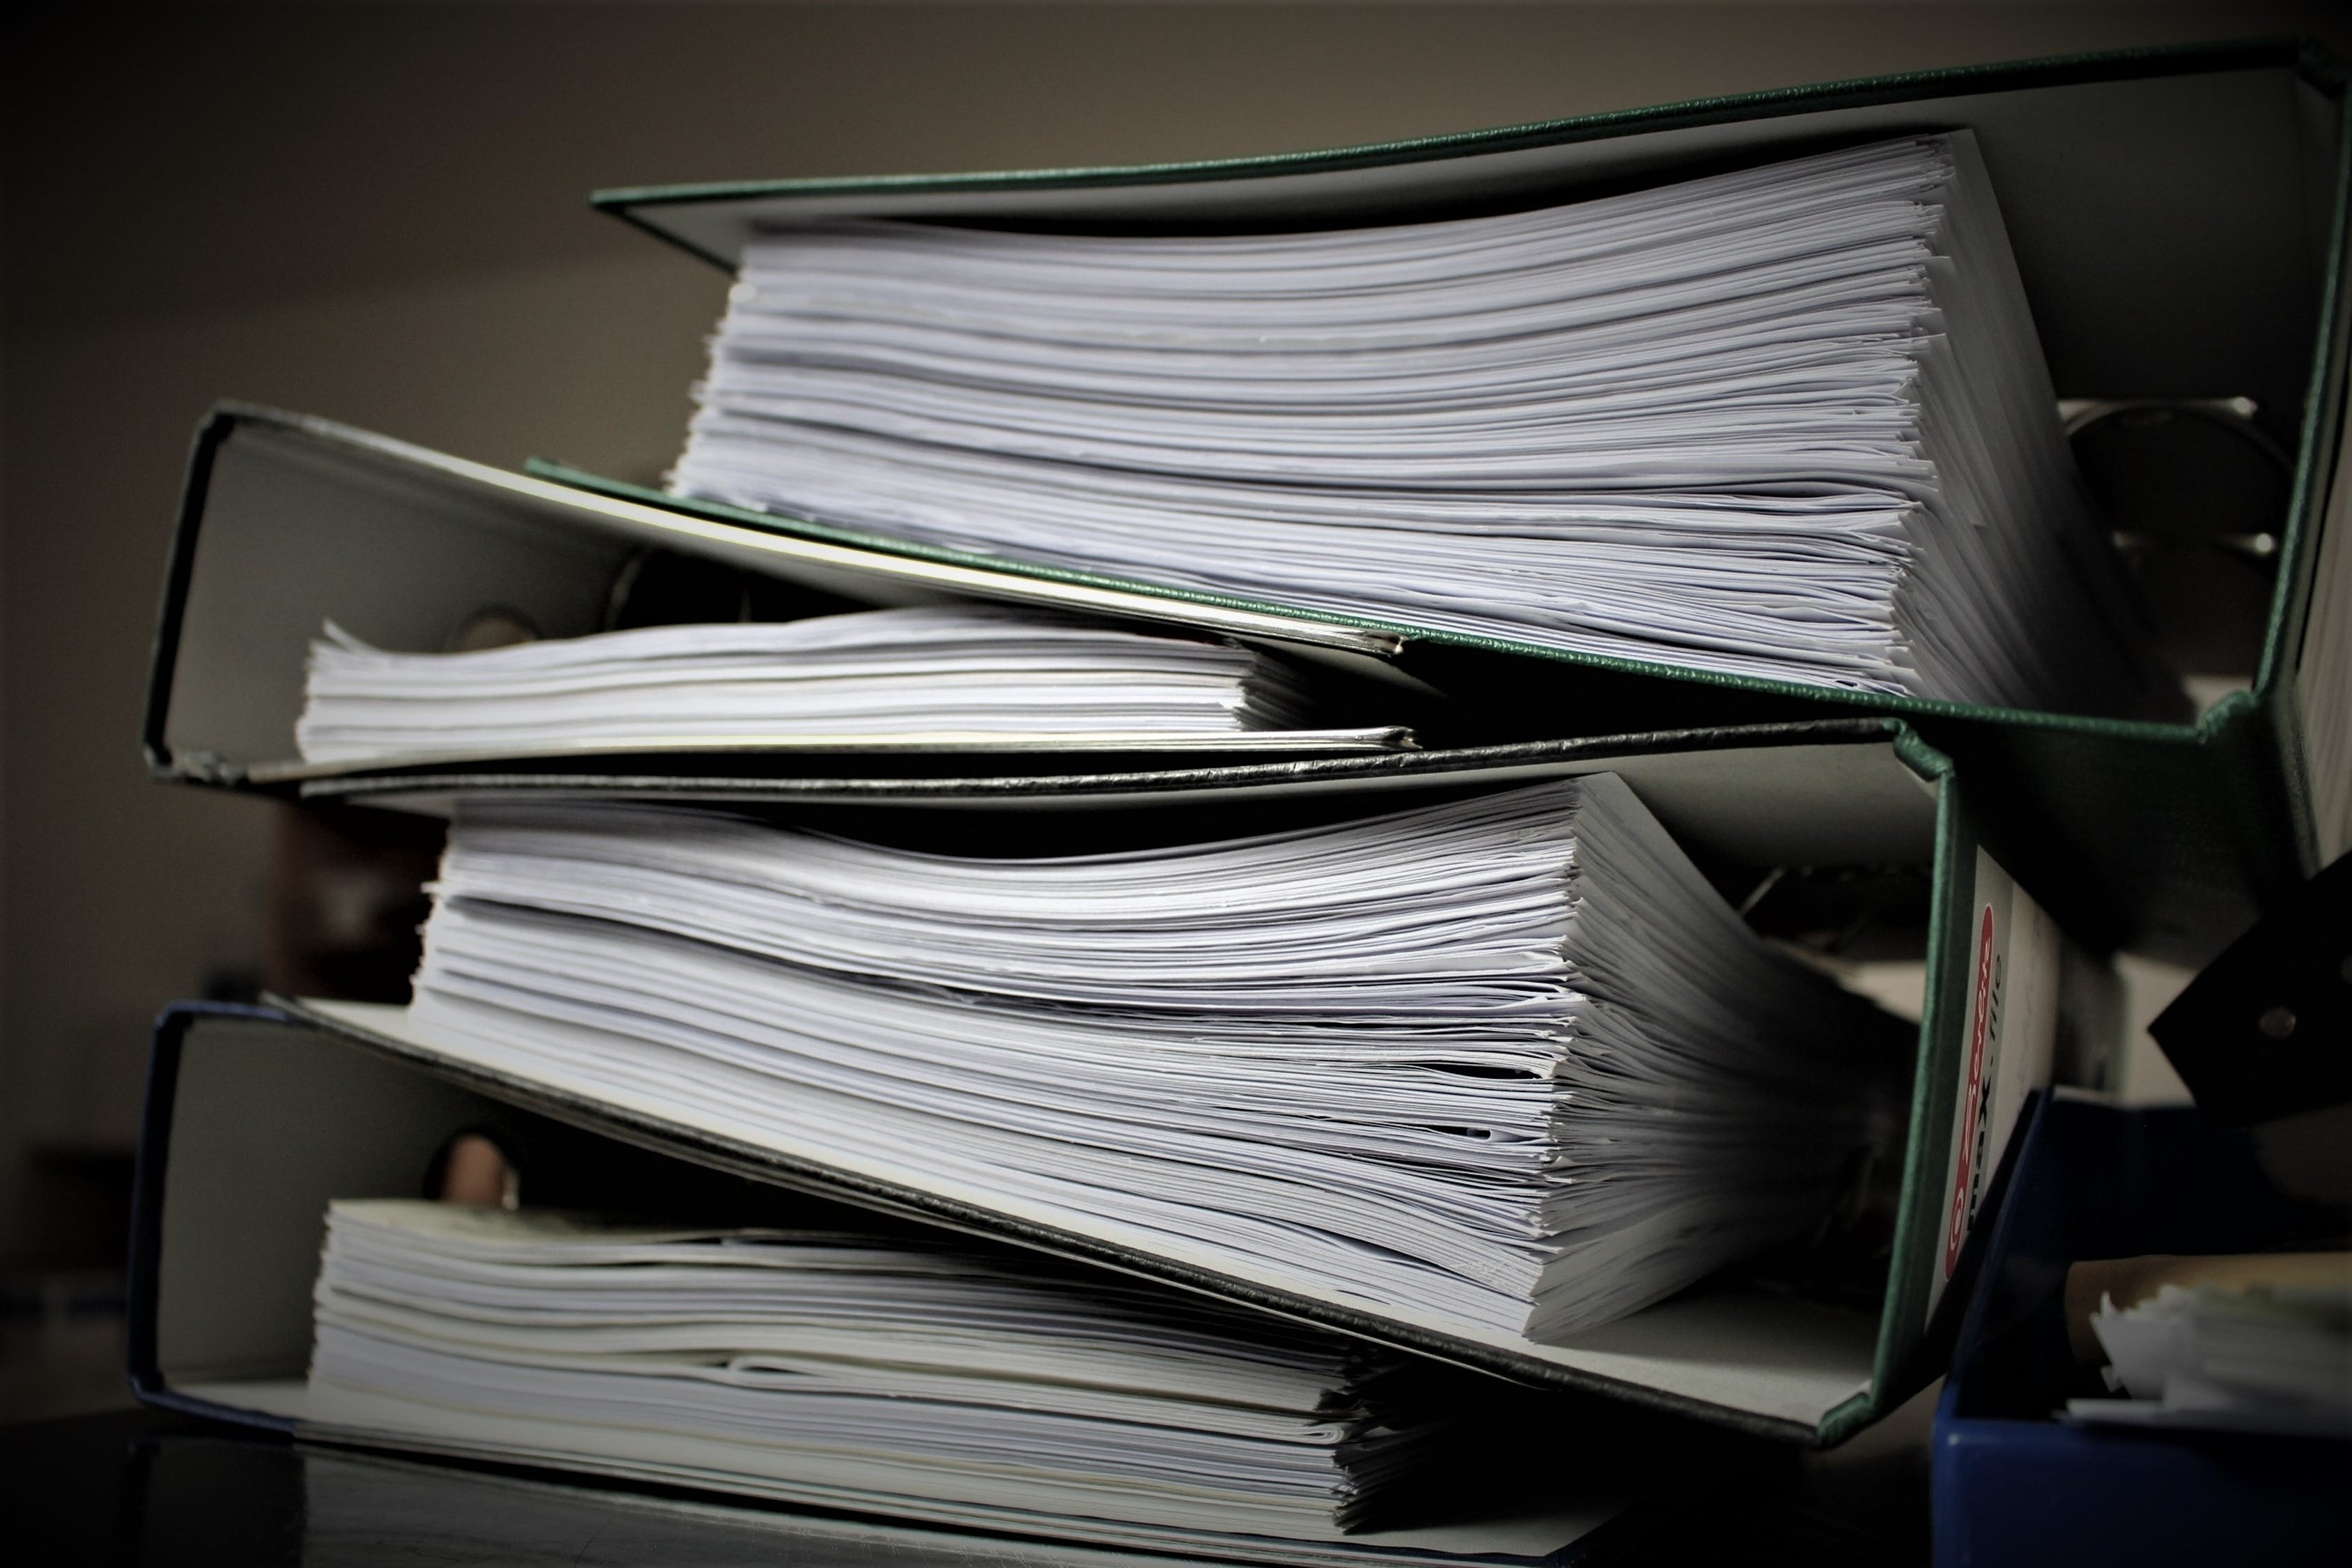 Three binders with piles of paper contained inside of them.